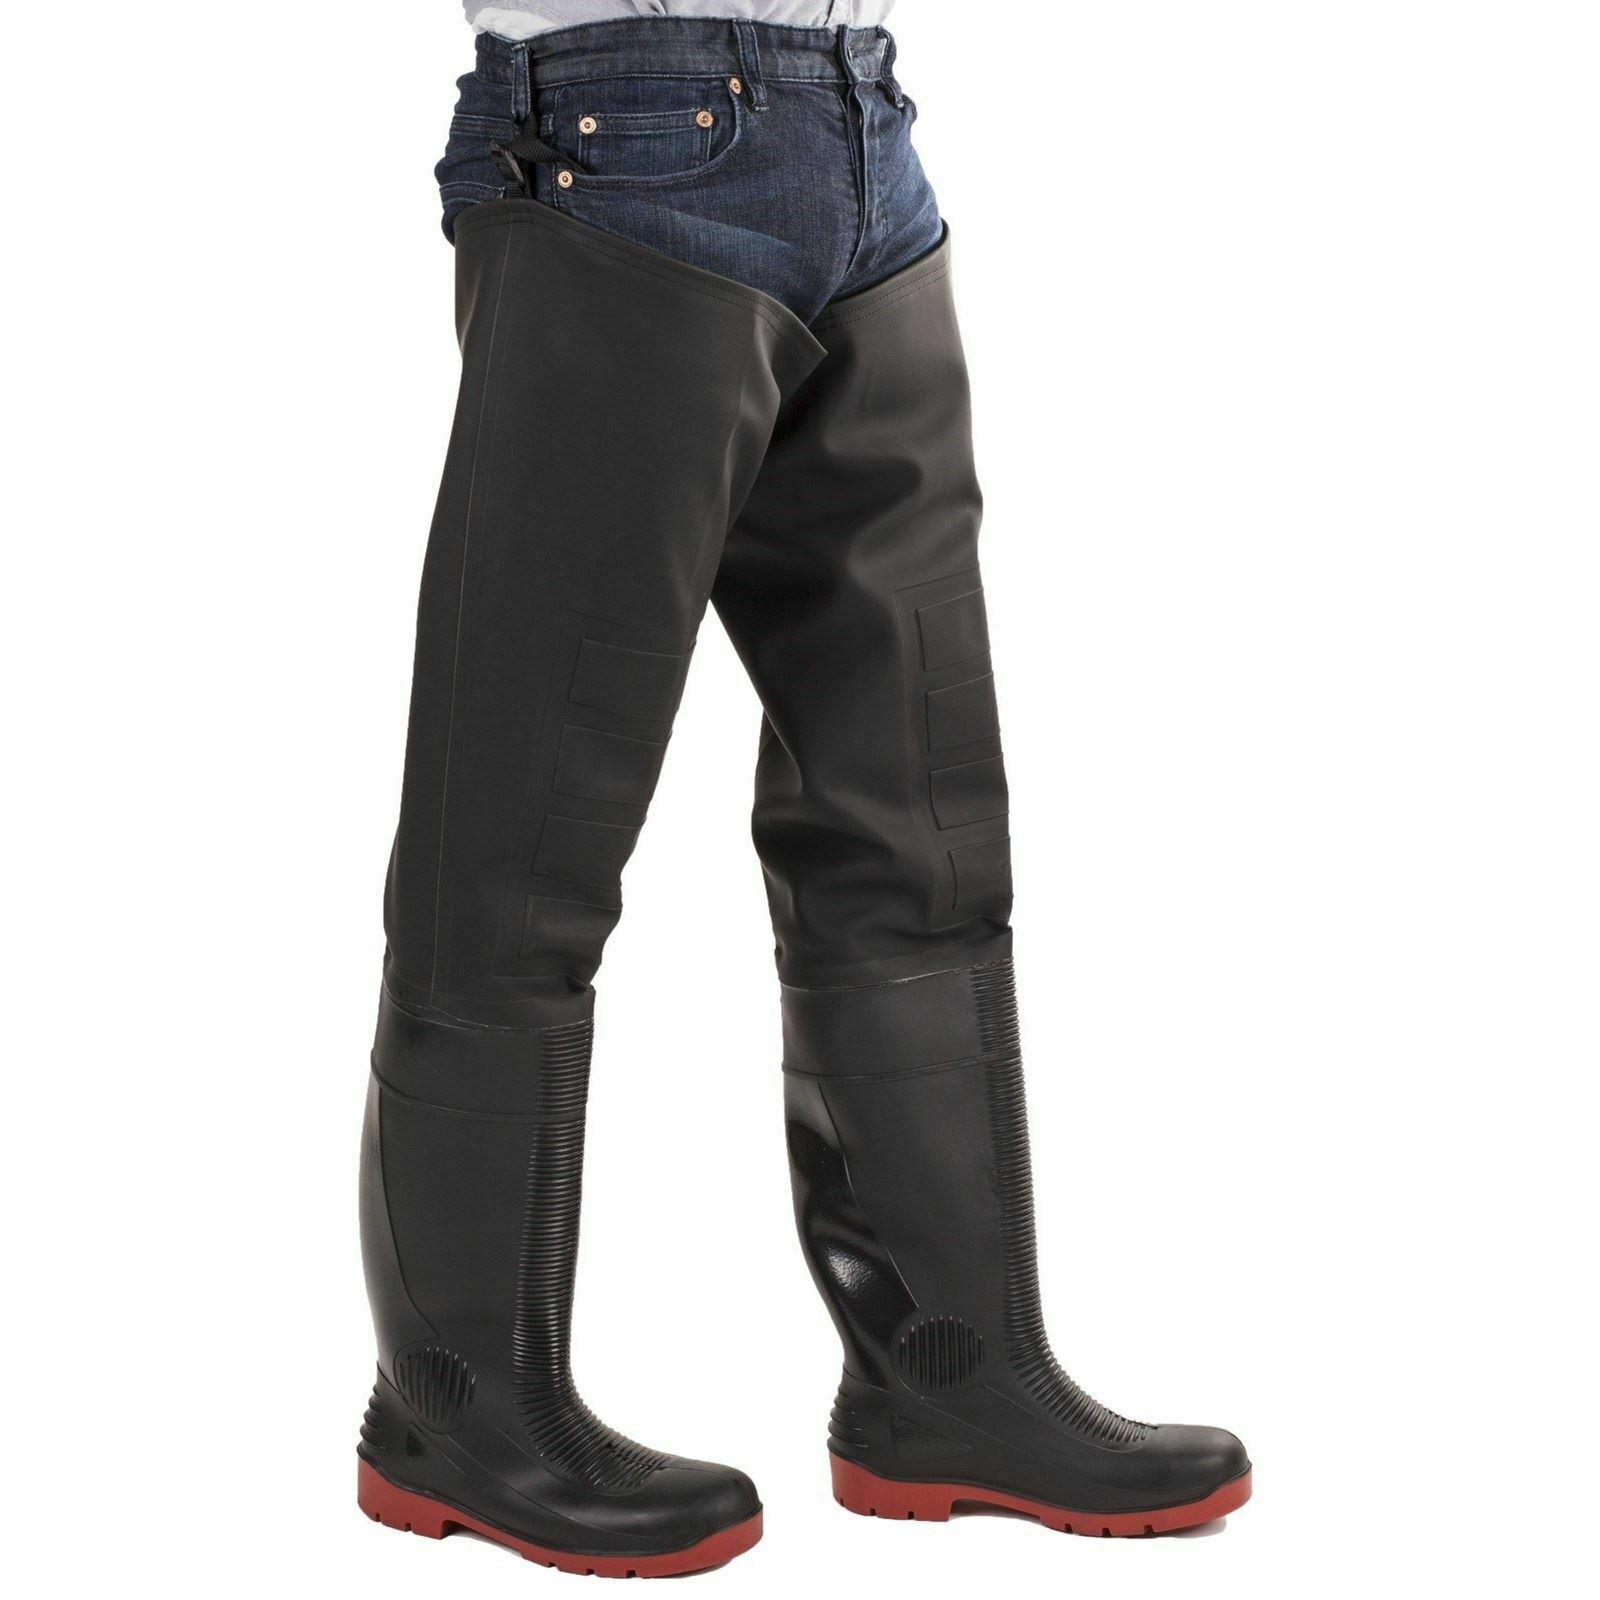 Amblers Safety Waders Rhone Thigh Safety Wader Black Red SRA